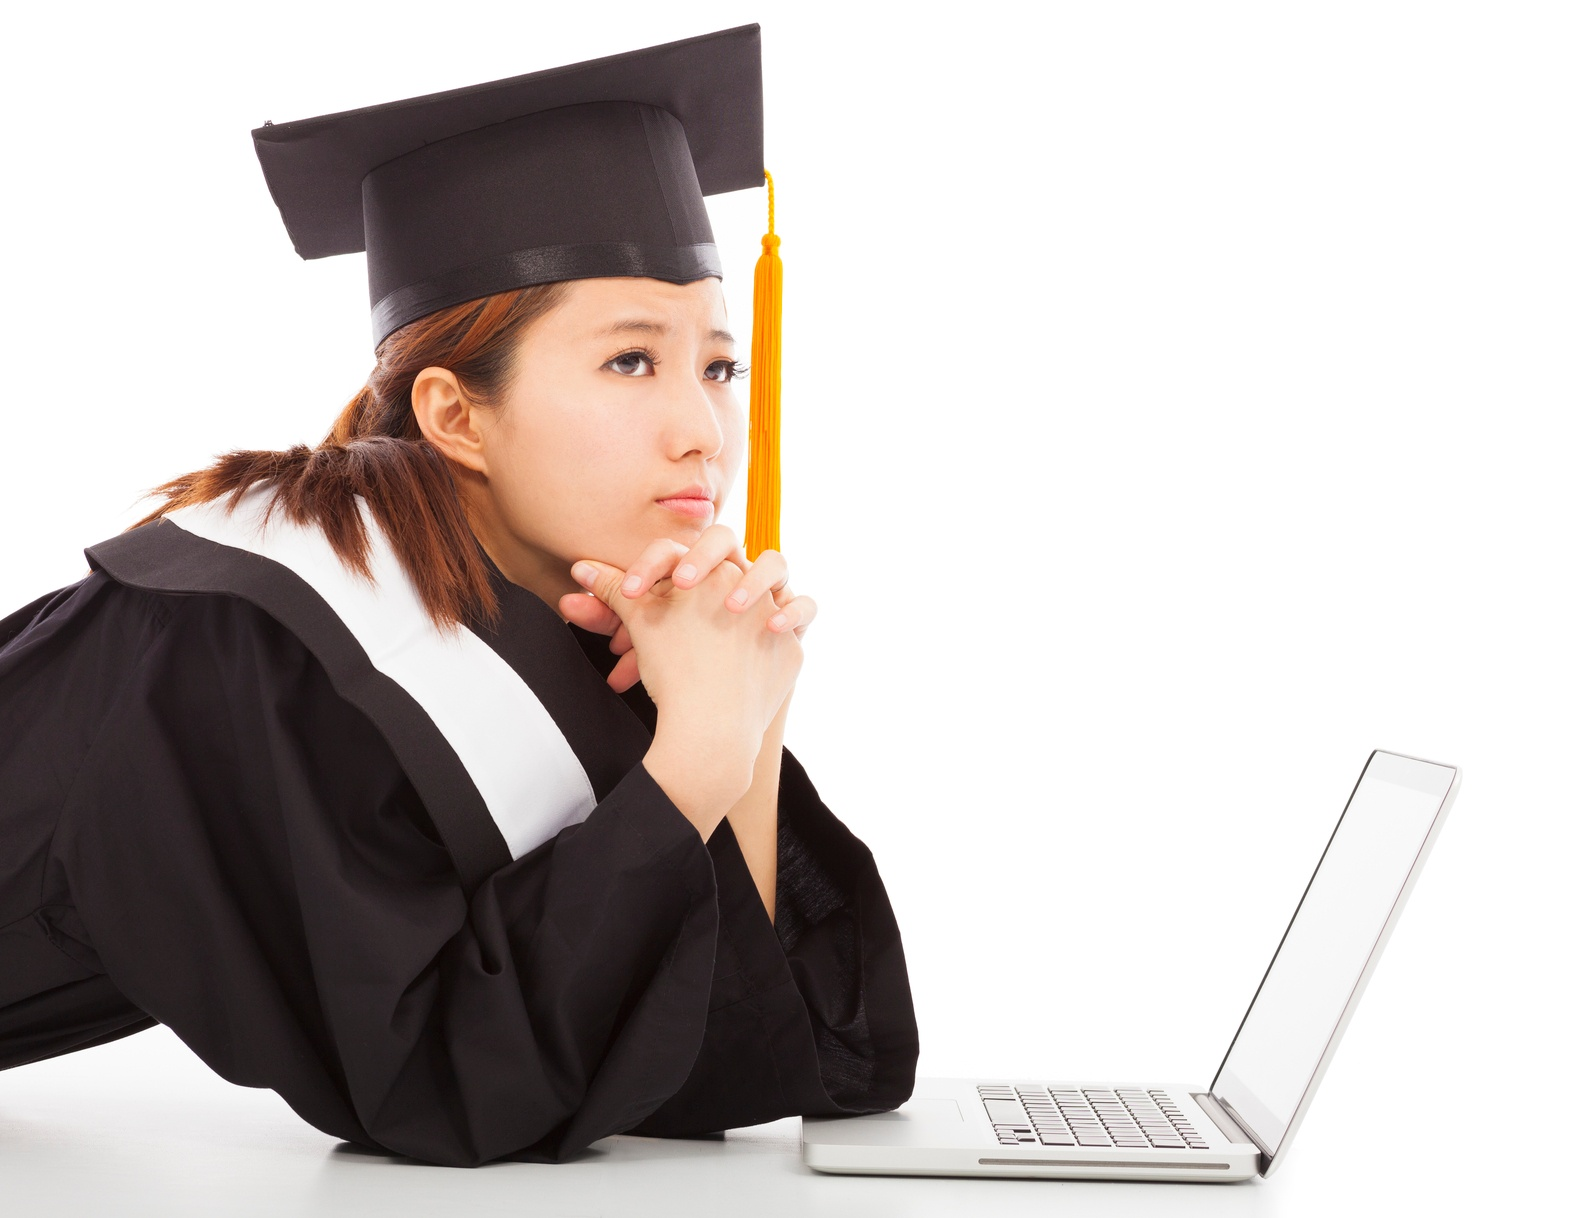 Higher Education: Ready for Inbound Marketing?